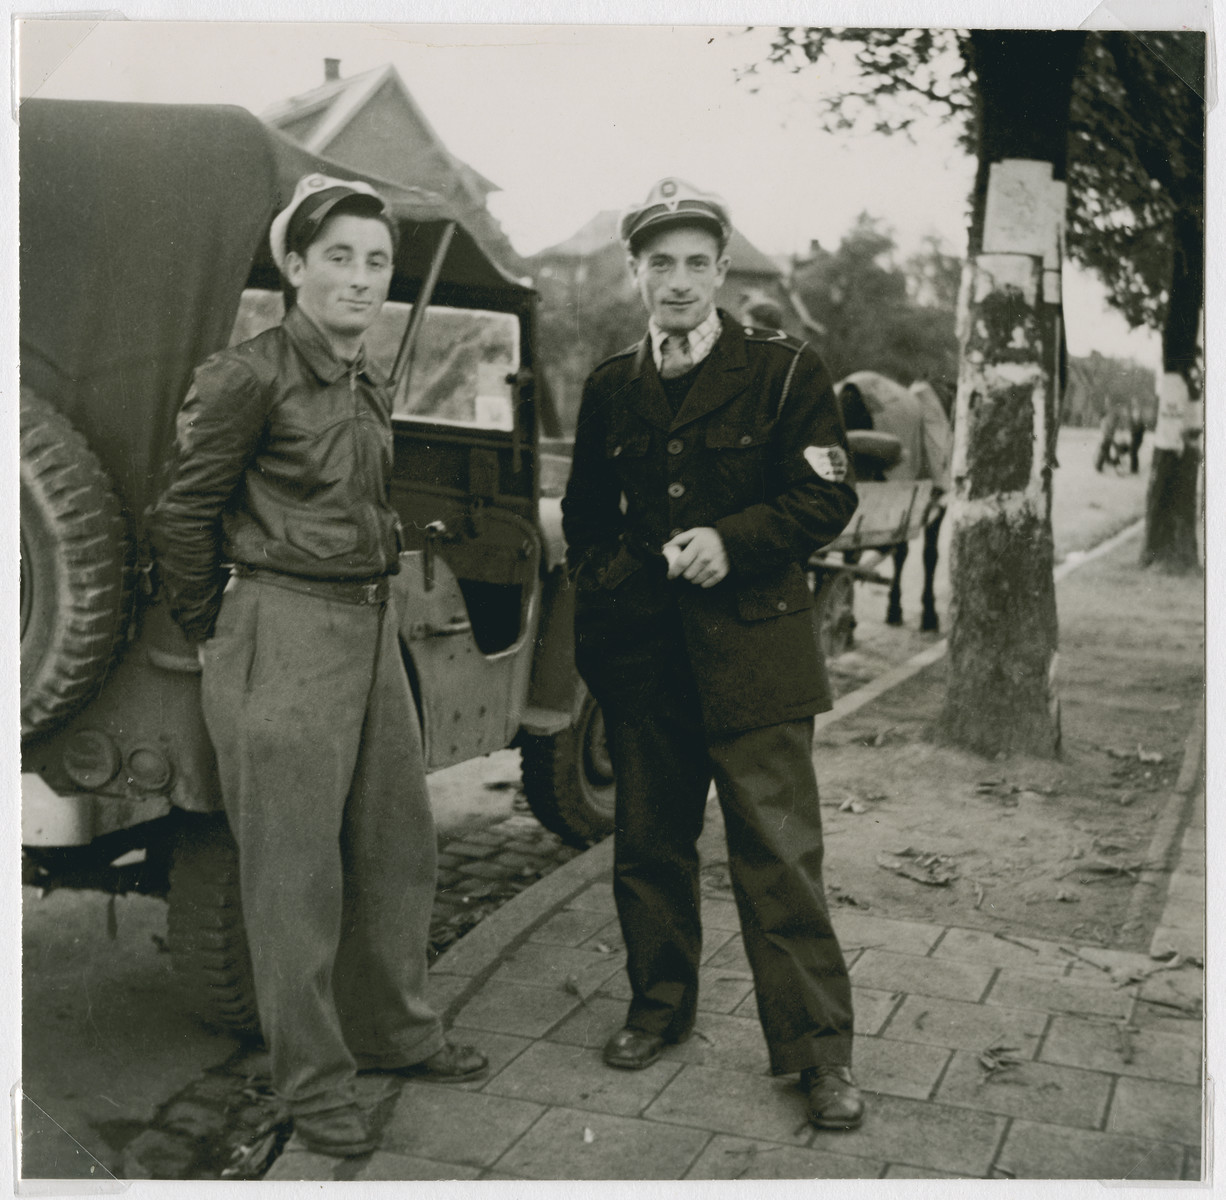 Two Jewish policemen in the Zeilsheim displaced persons camp stand next to a truck.